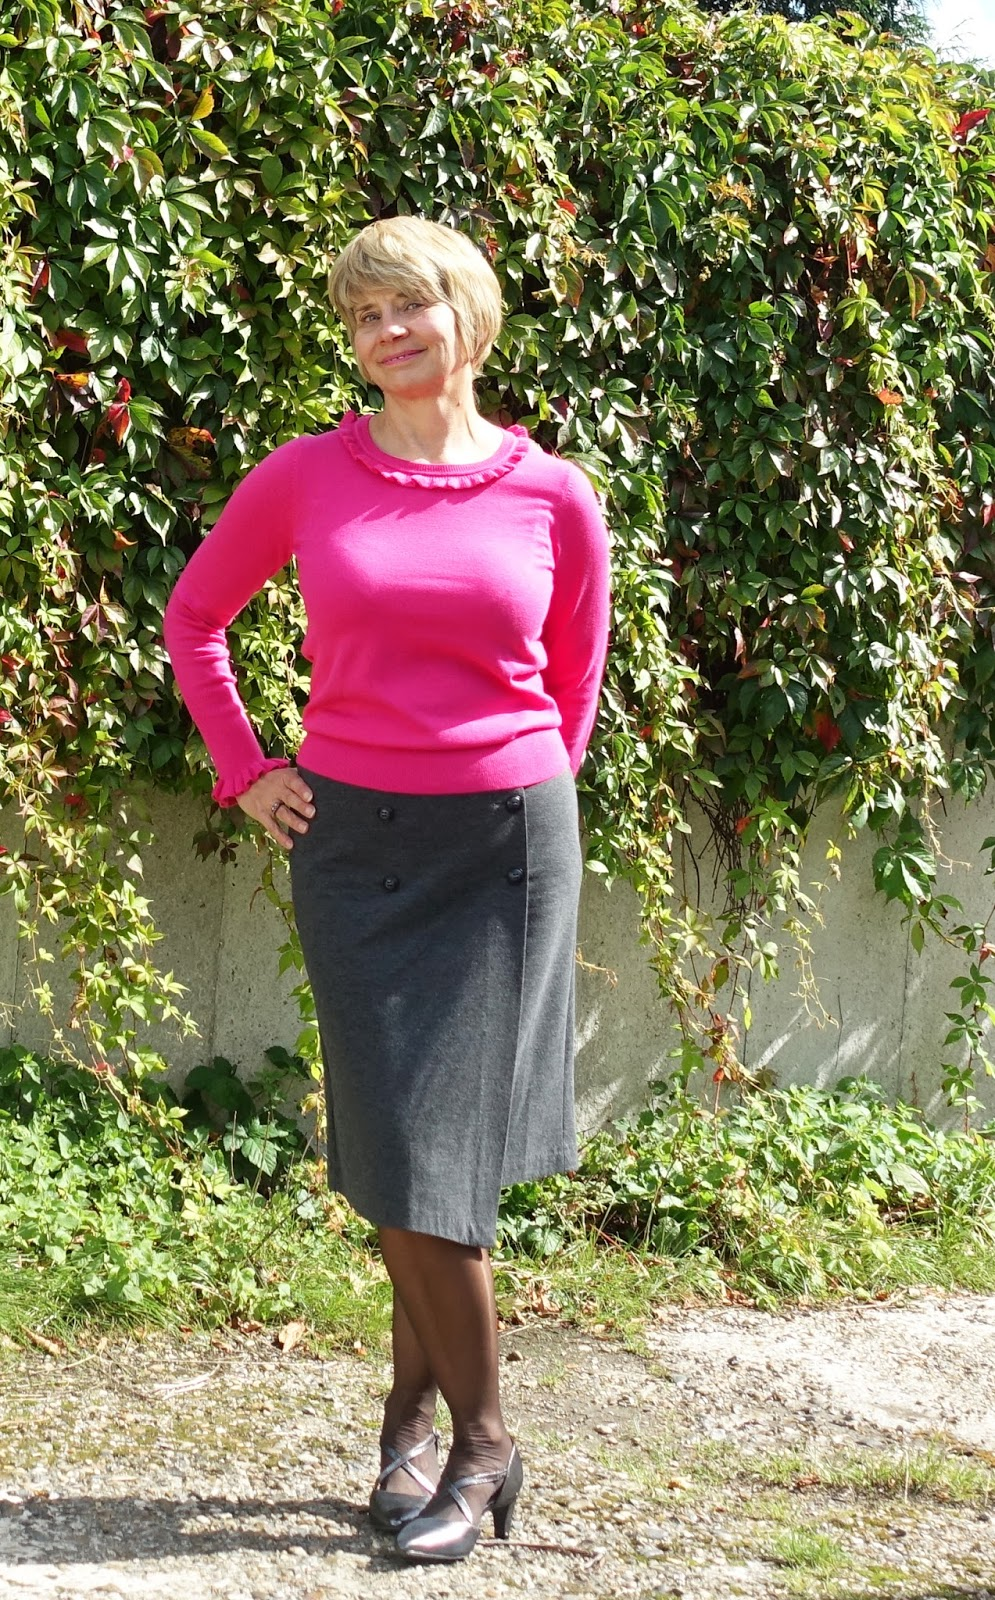 Gail Hanlon from Is This Mutton fashion blog for the over 40s